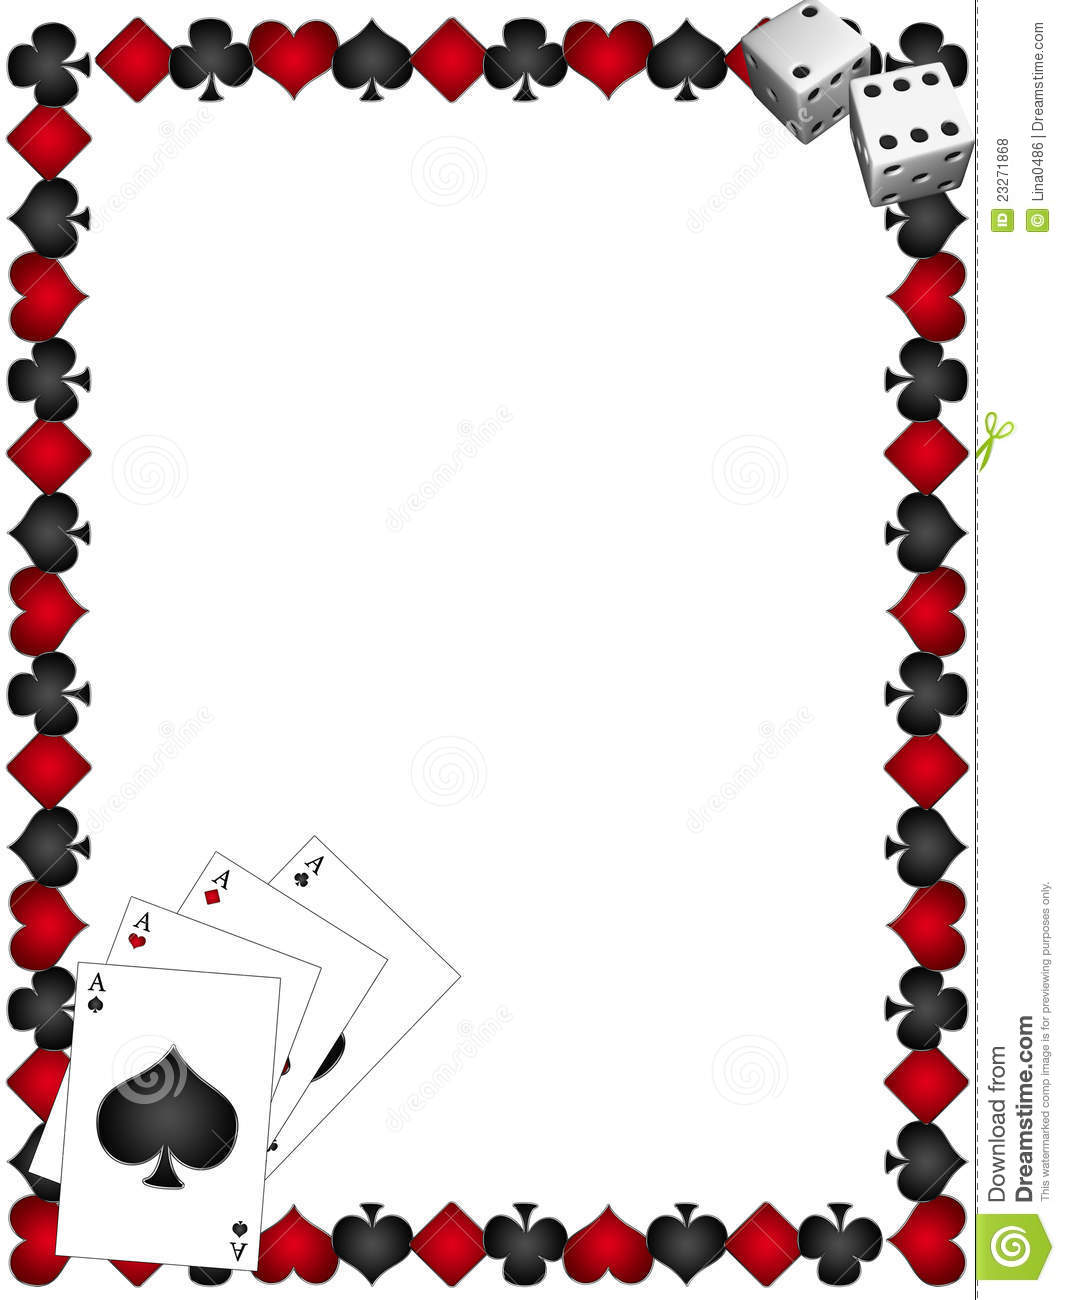 Playing Cards With Border Royalty Free Stock Photos - Image: 23271868